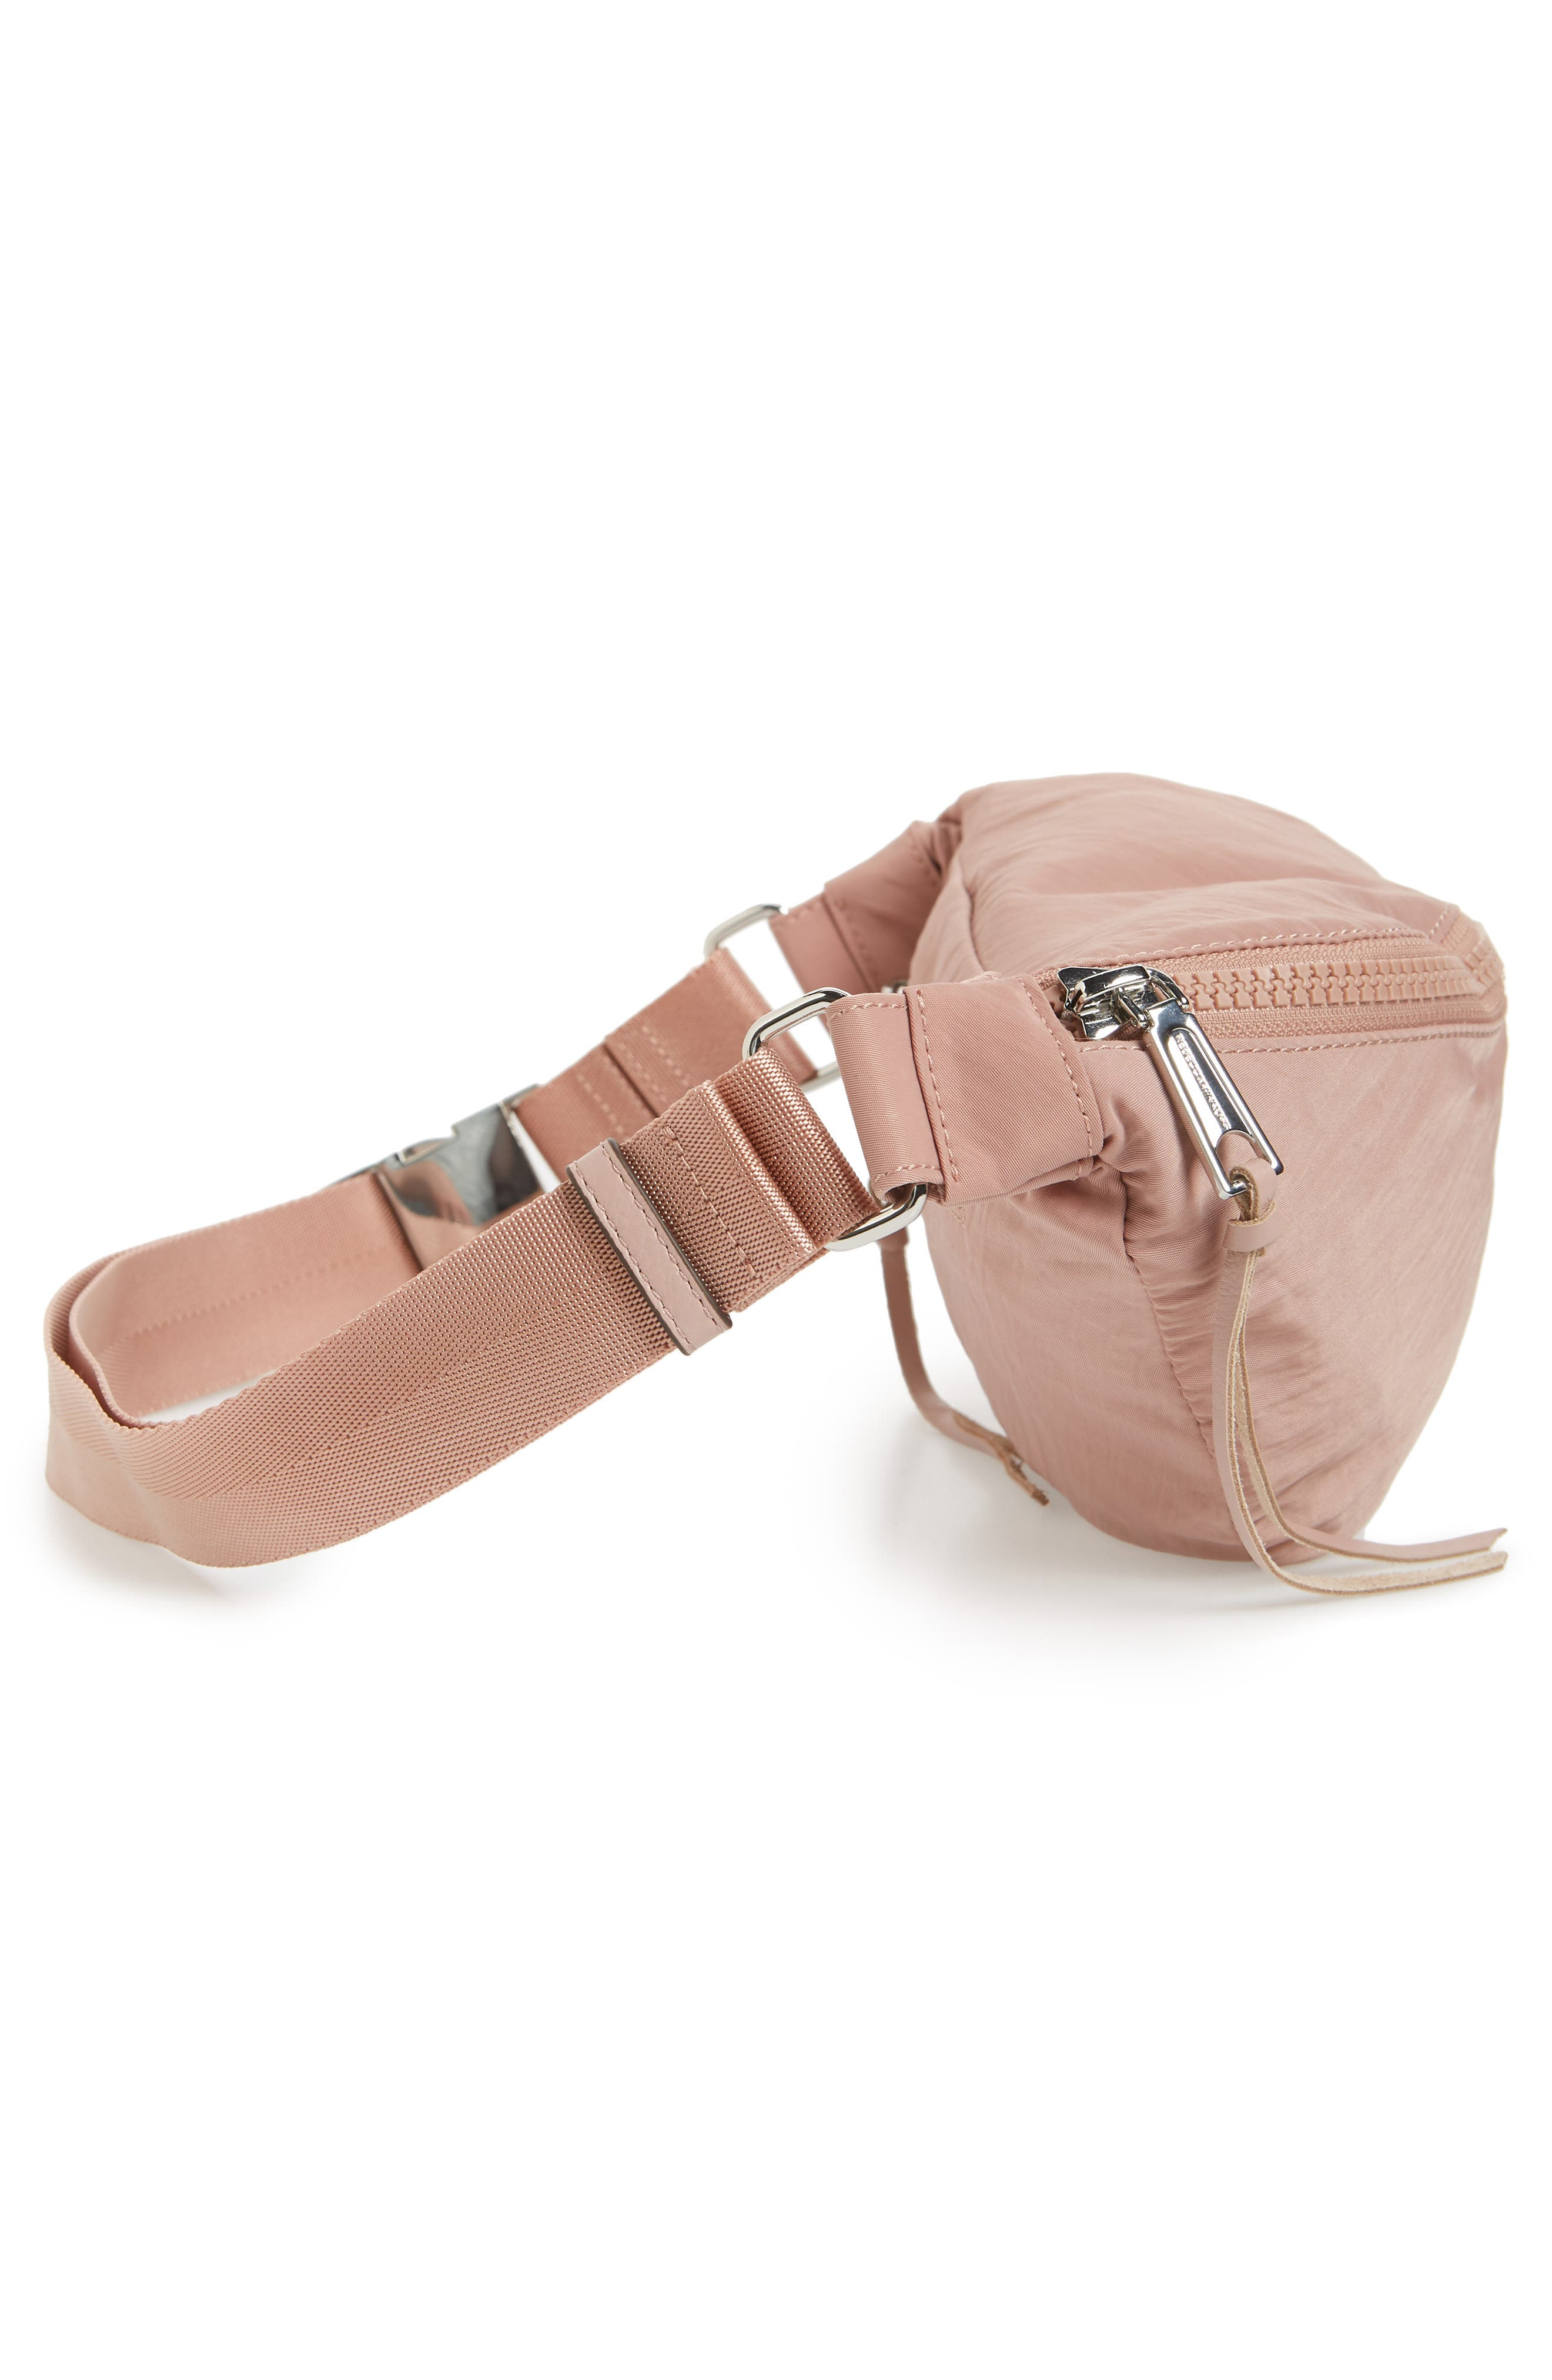 Nylon Belt Bag,                             Alternate thumbnail 4, color,                             Vintage Pink